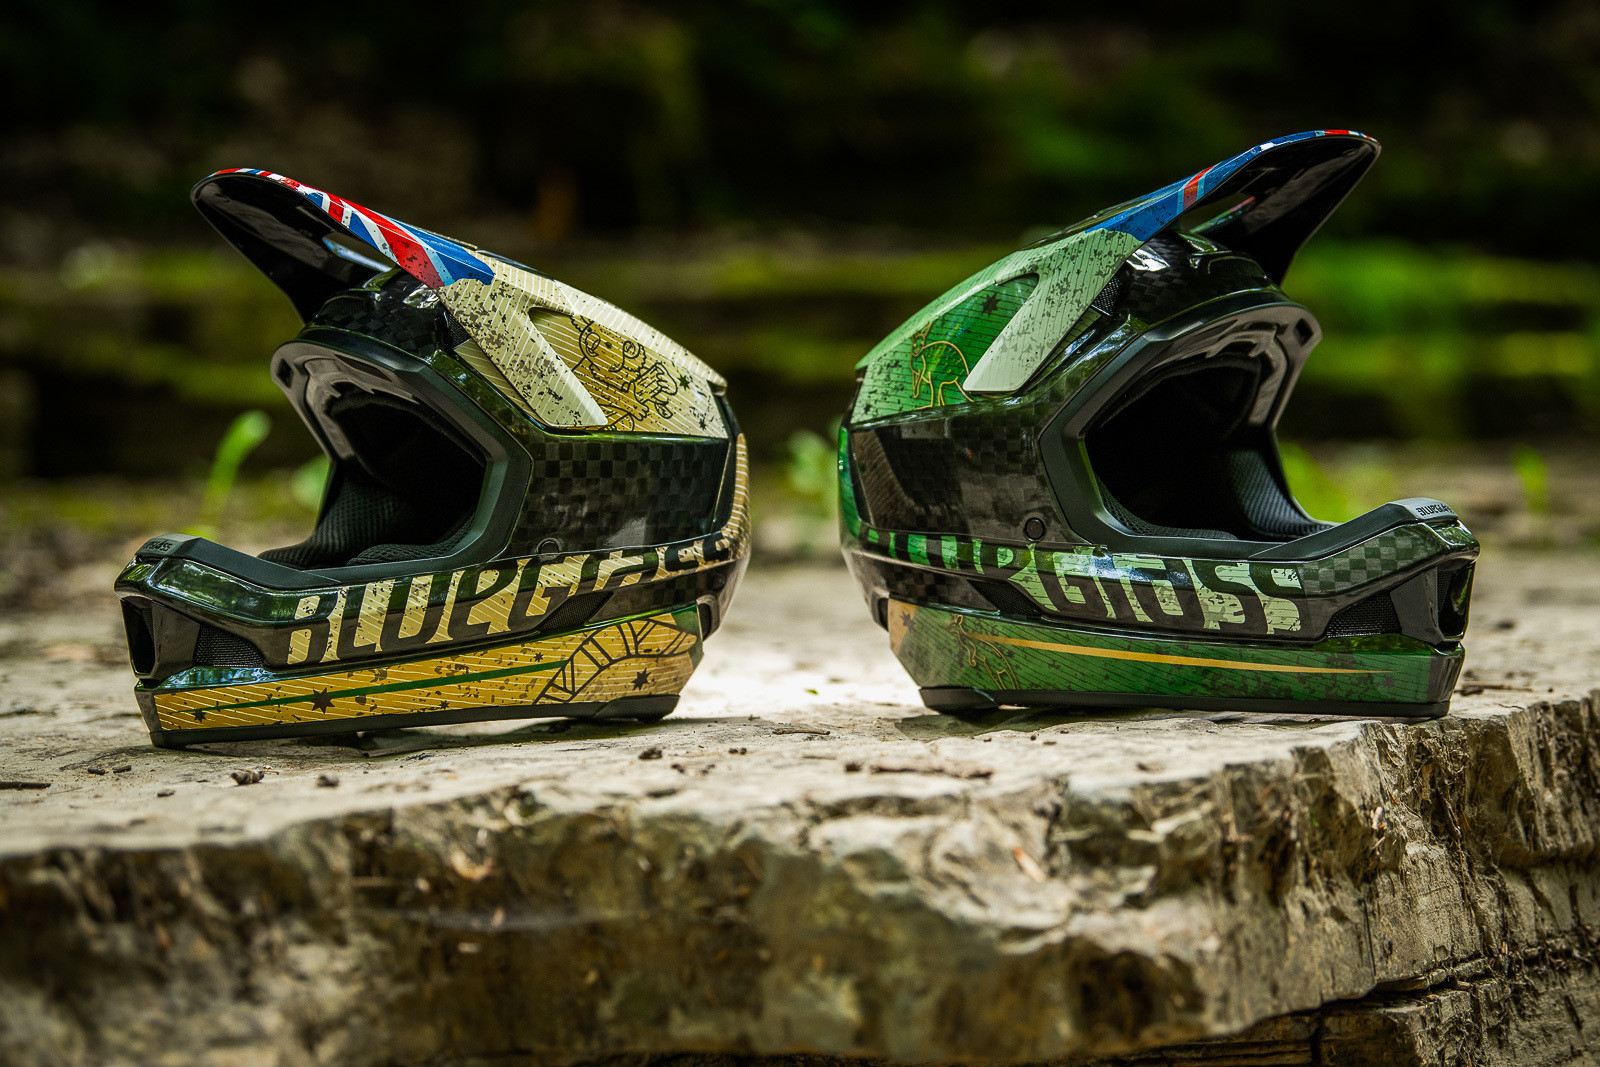 Tracey and Mick Hannah's World Champs Bluegrass Helmets - Tracey and Mick Hannah's World Champs Polygon DH Race Bikes - Mountain Biking Pictures - Vital MTB